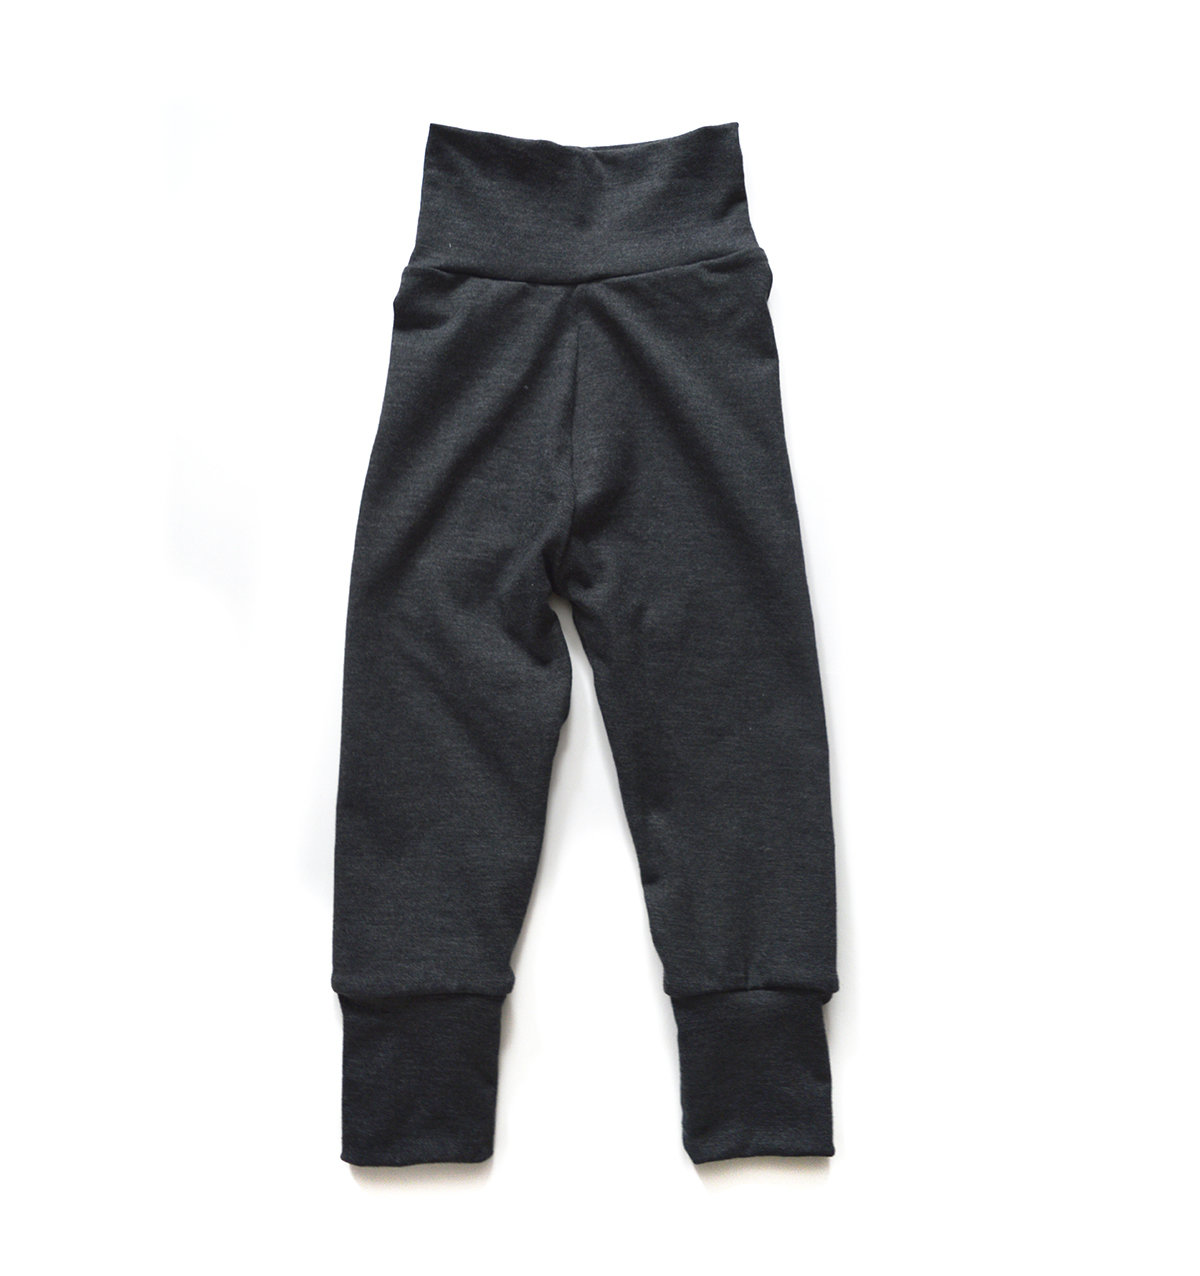 Little Sprout Pants™ Charcoal Heather Grey - Slim Fit 00485